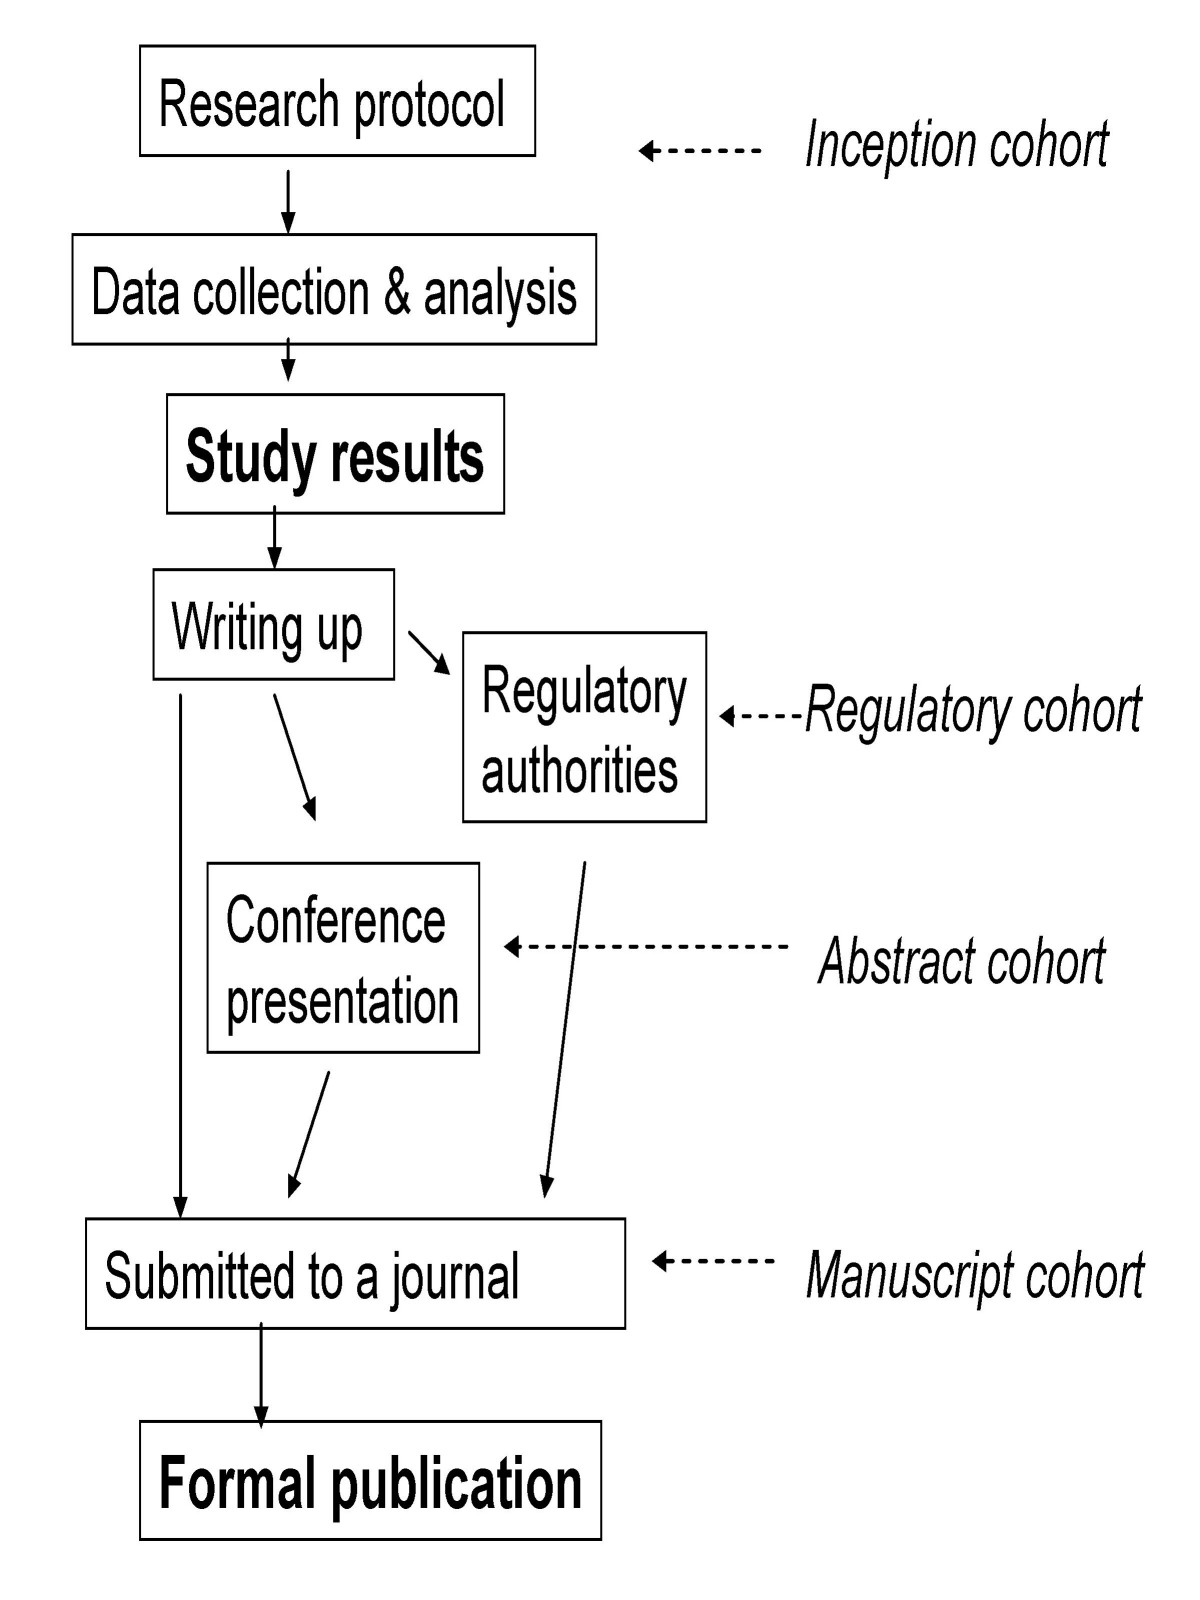 https://static-content.springer.com/image/art%3A10.1186%2F1471-2288-9-79/MediaObjects/12874_2008_Article_395_Fig1_HTML.jpg